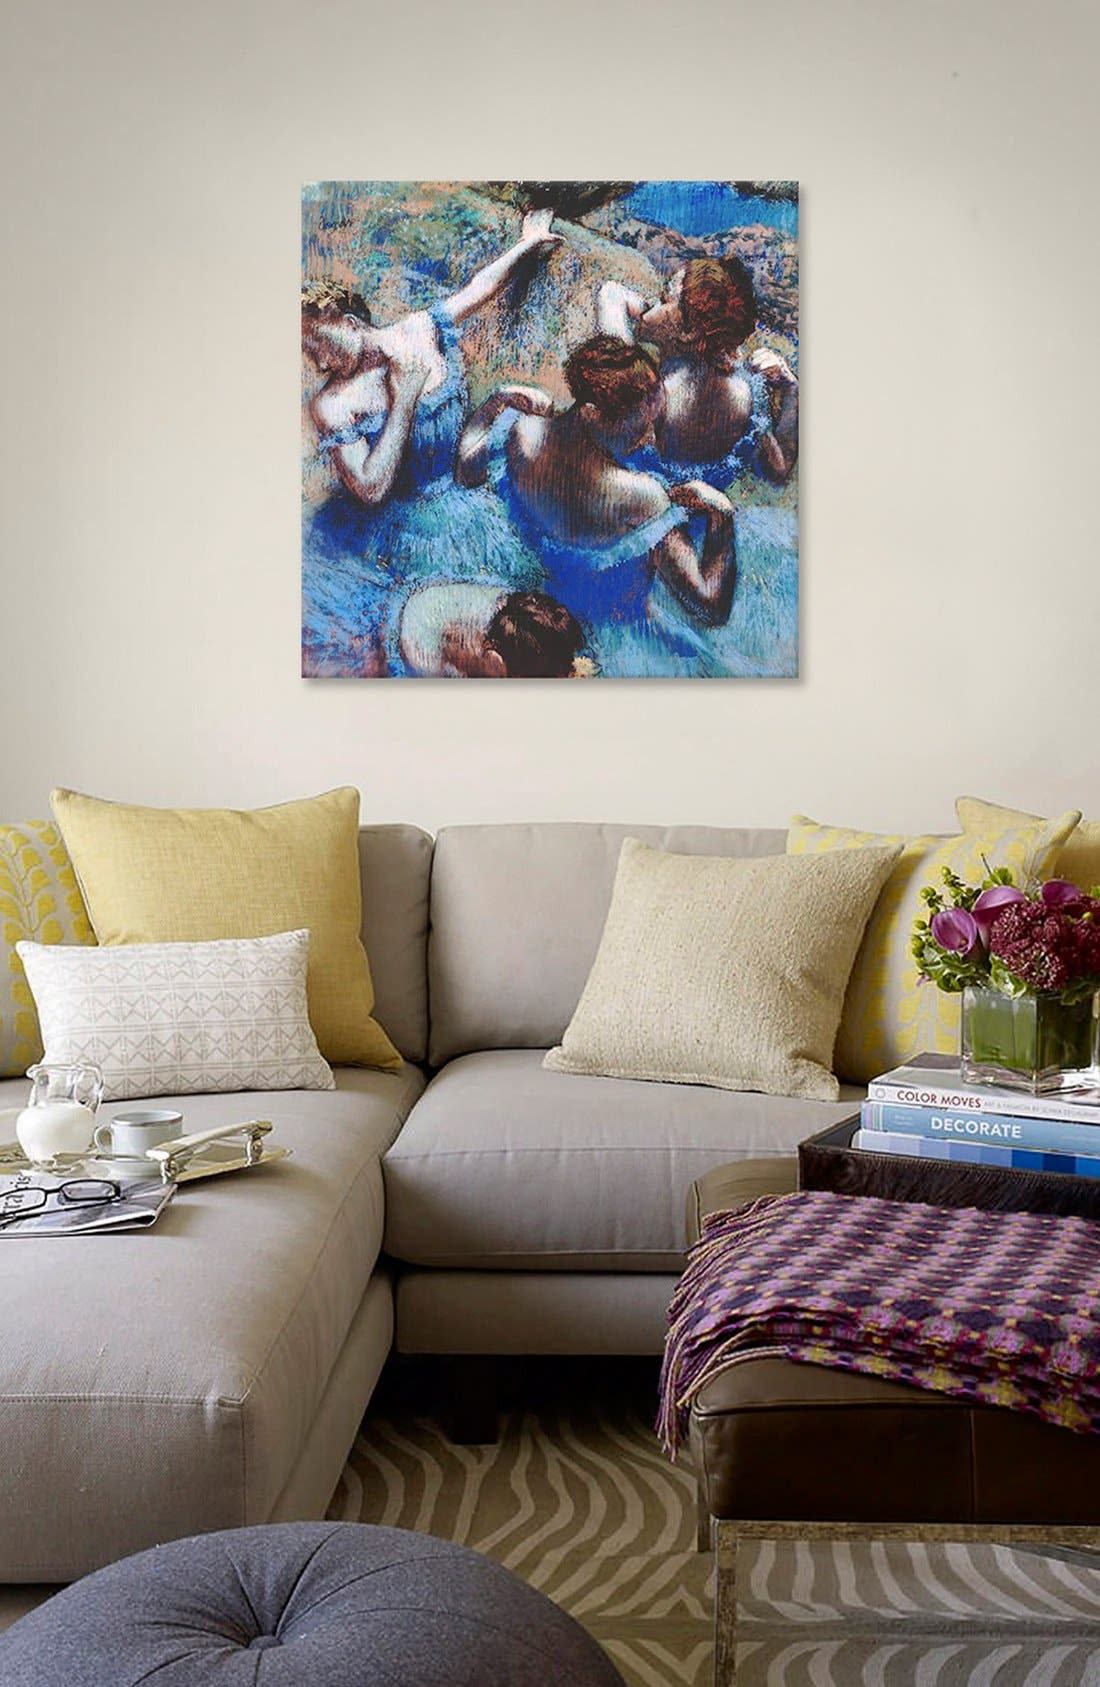 'Blue Dancers 1899 - Edgar Degas' Giclée Print Canvas Art,                             Alternate thumbnail 2, color,                             400